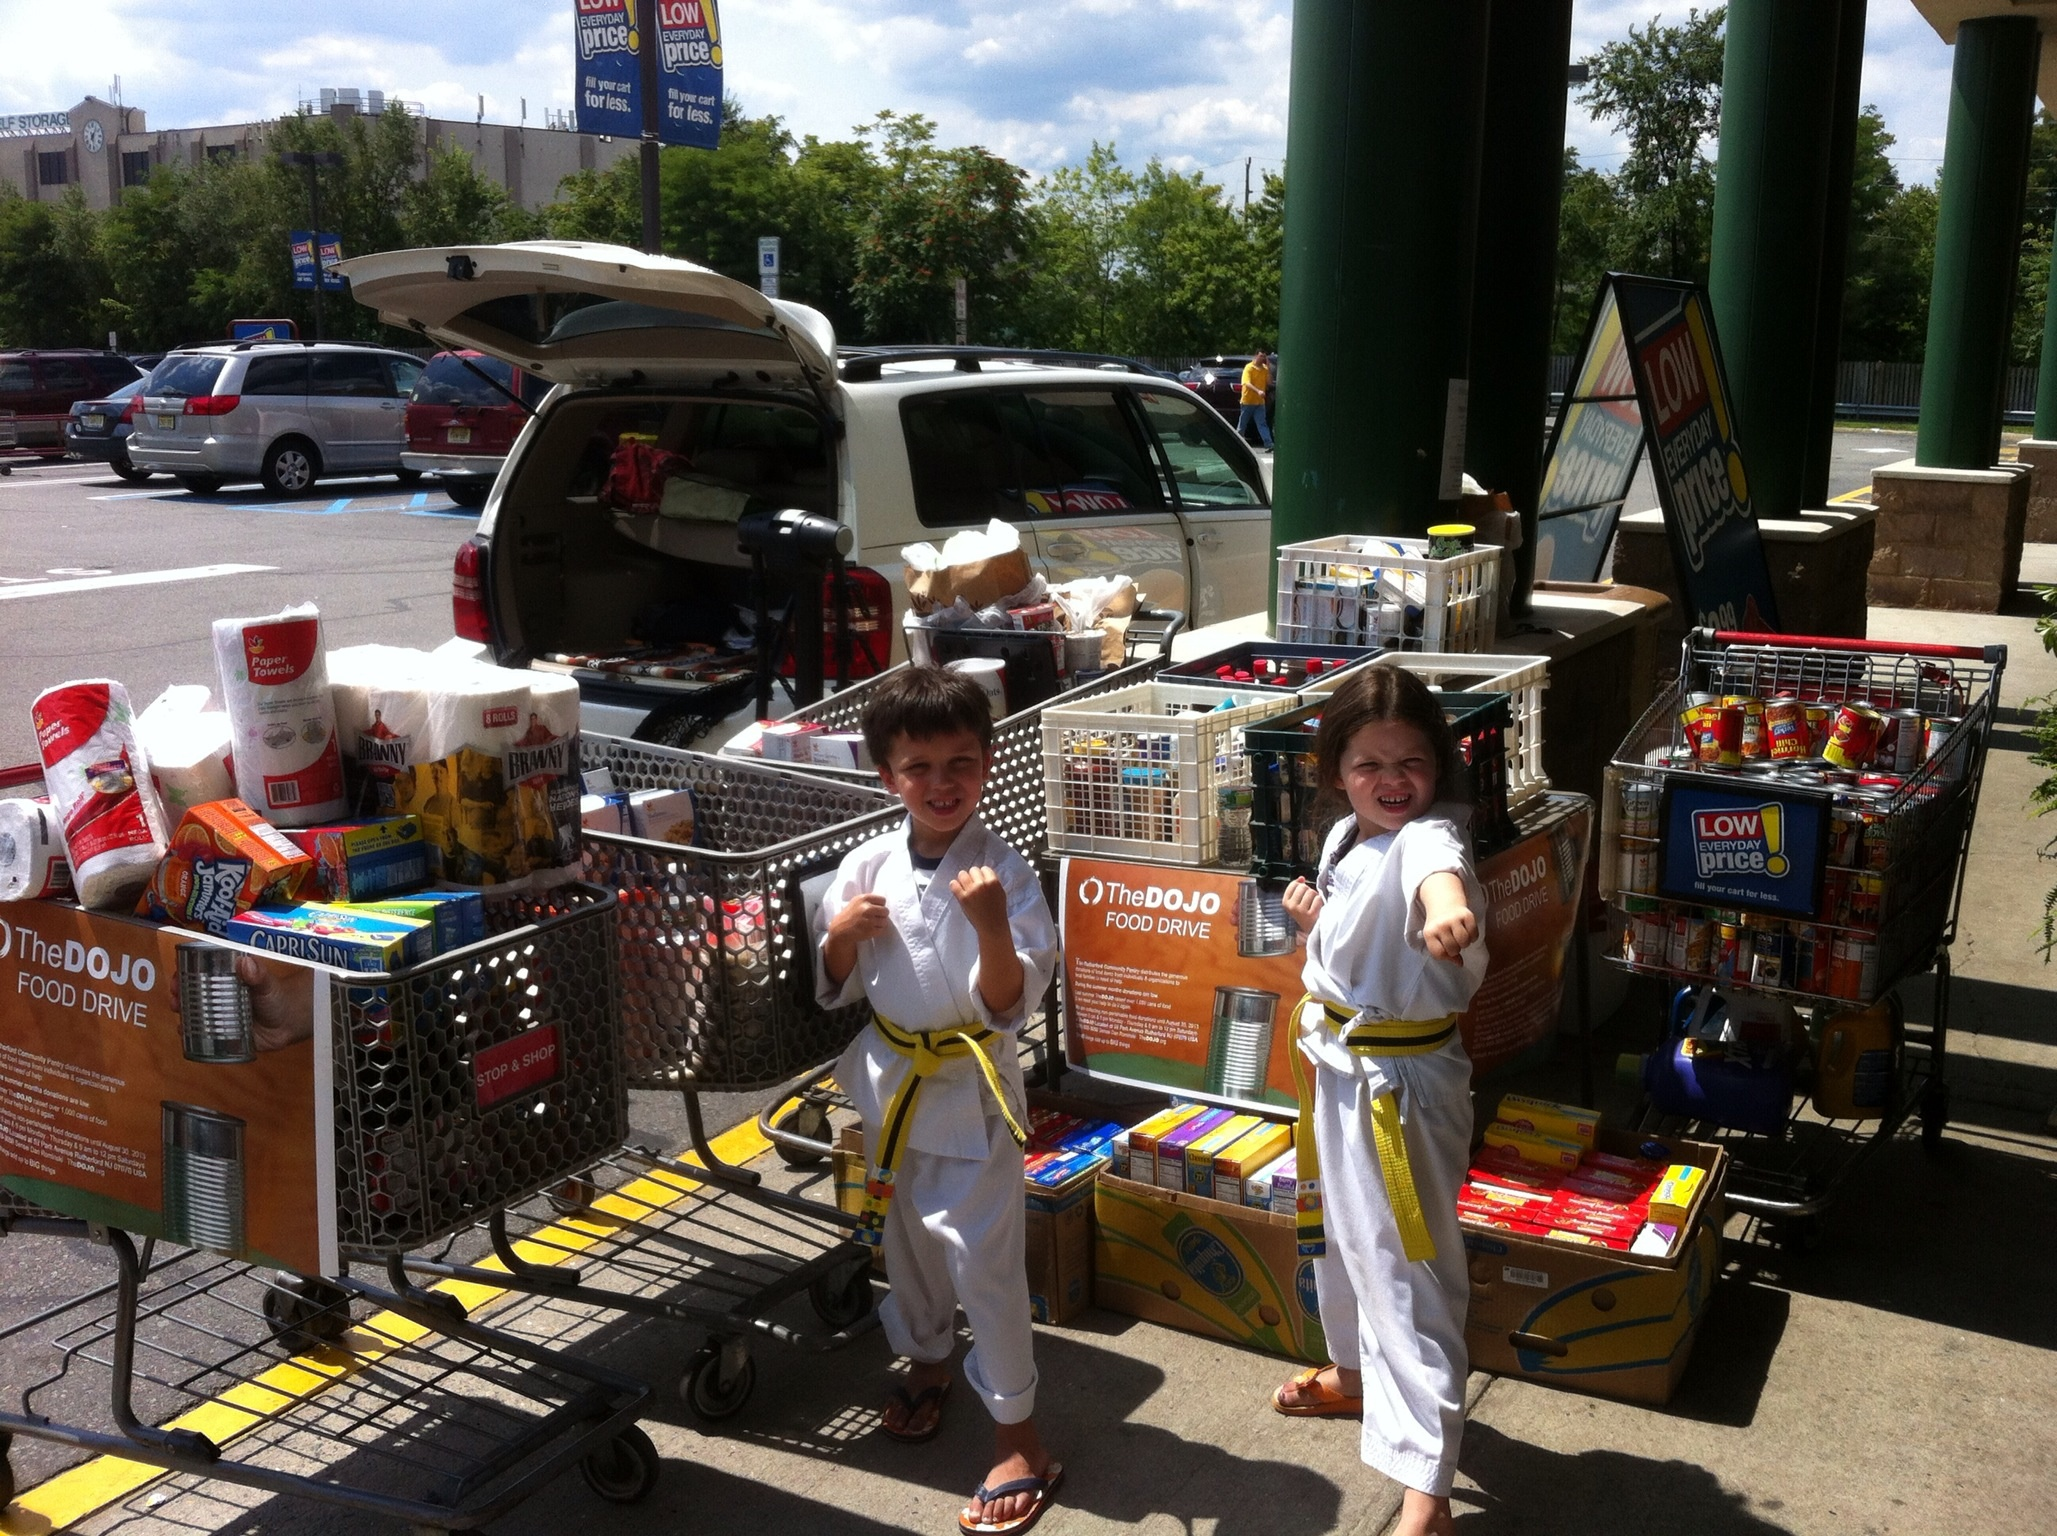 thedojo-food-drive-martial-arts-karate-kids-doing-community-service-in-rutherford-nj_14668864904_o.jpg